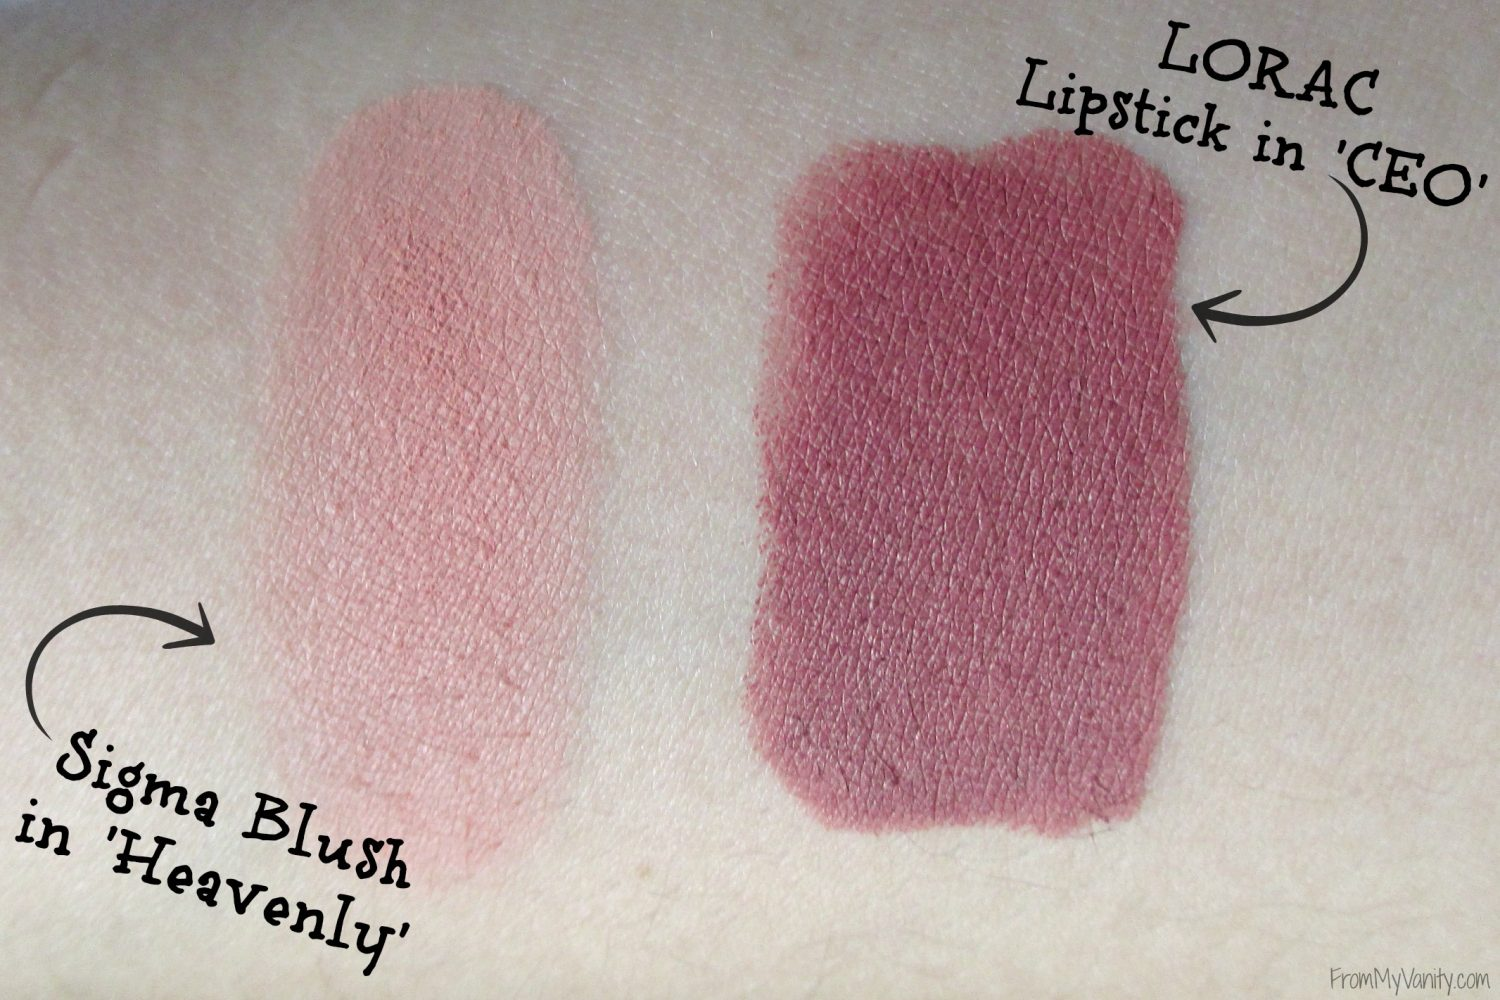 Monthly Beauty Favorites // October 2015 // Sigma Blush in Heavenly & LORAC Lipstick in CEO Swatches // FromMyVanity.com